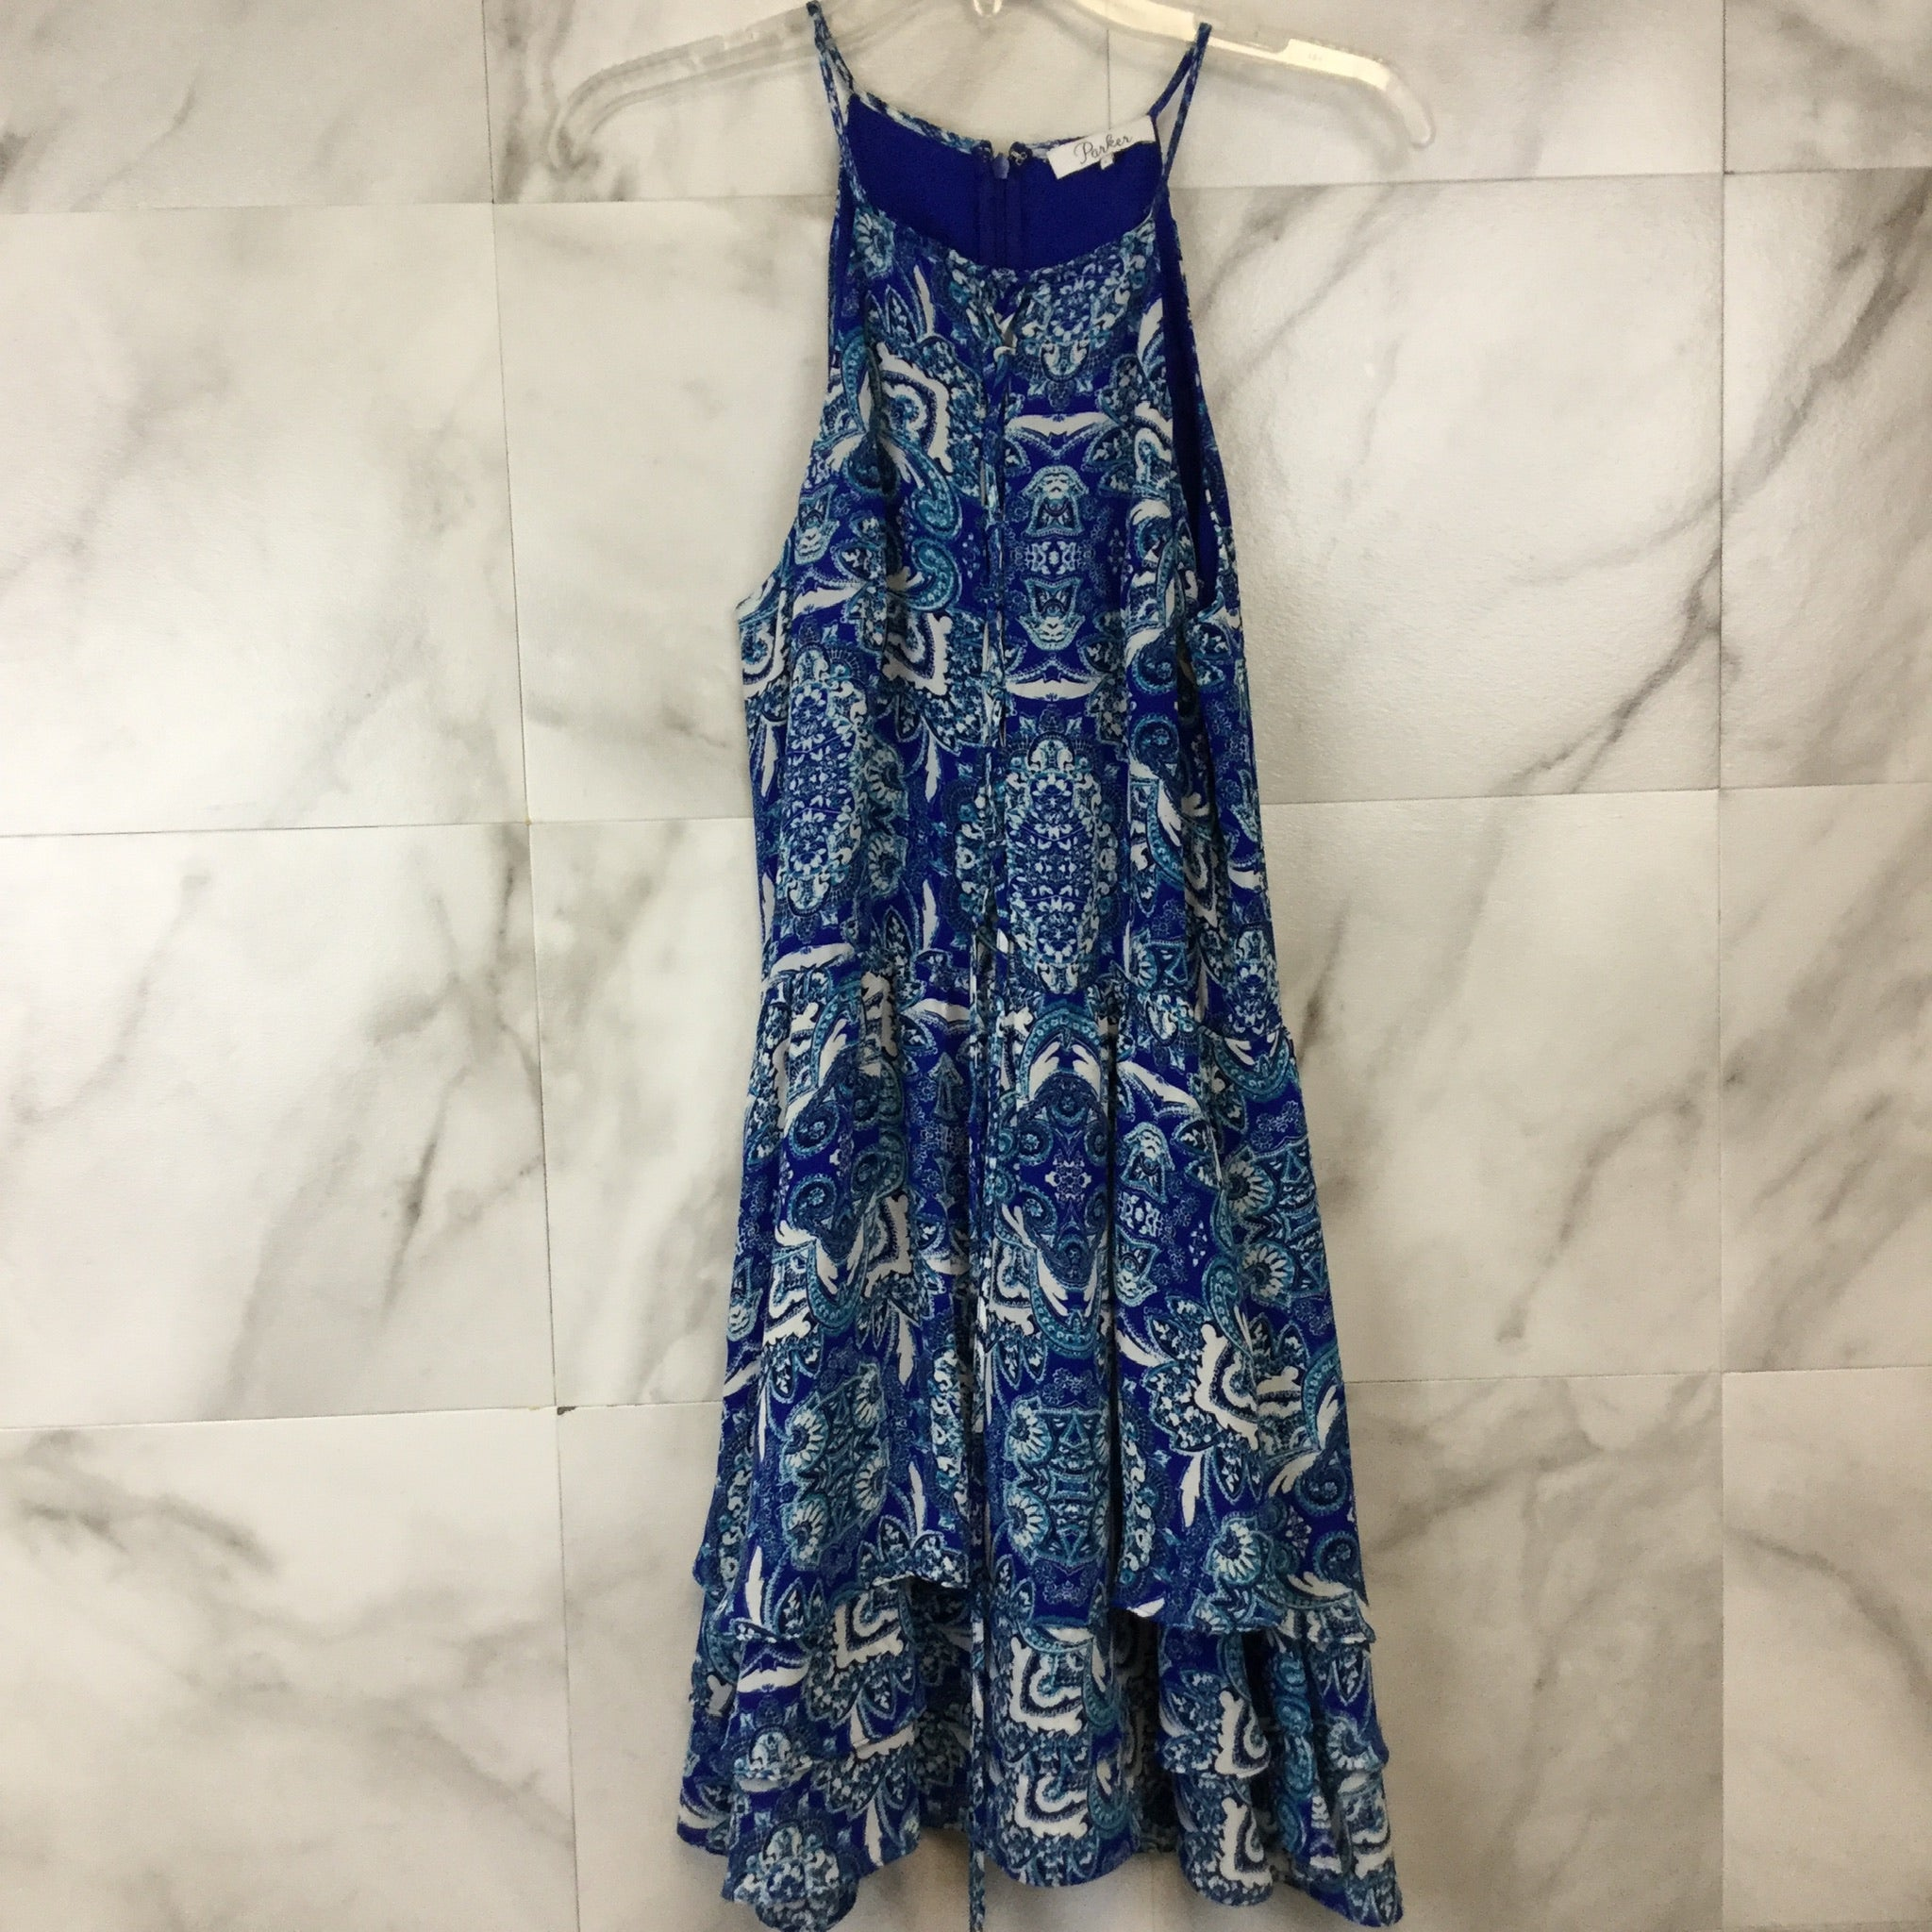 Parker Dax Printed Dress - size L